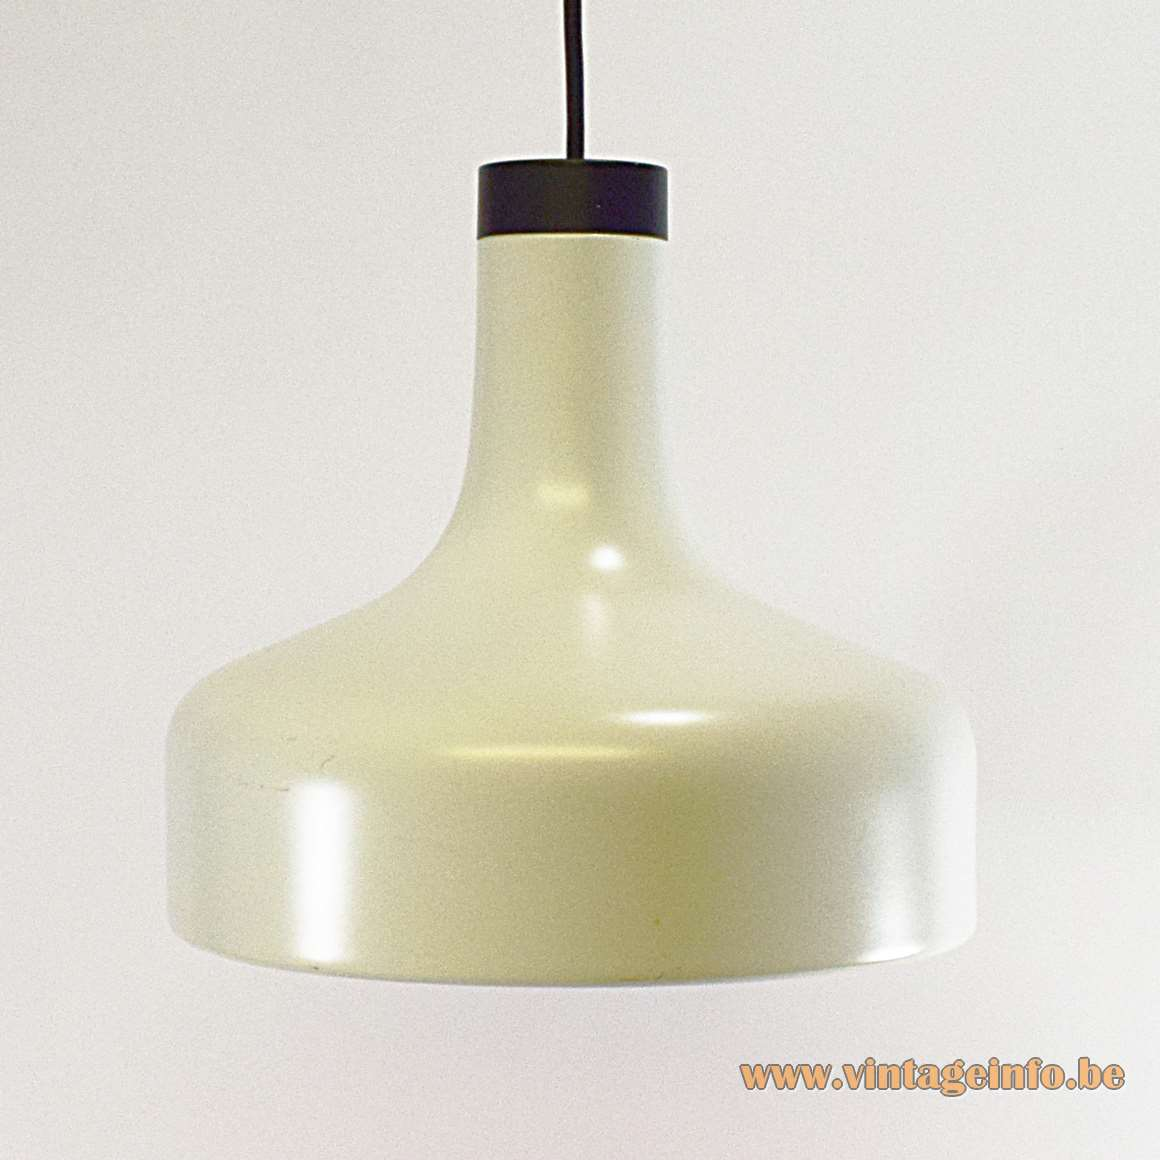 Staff Aluminium Pendant Lamp 5405 white 1970s mushroom black plastic top MCM